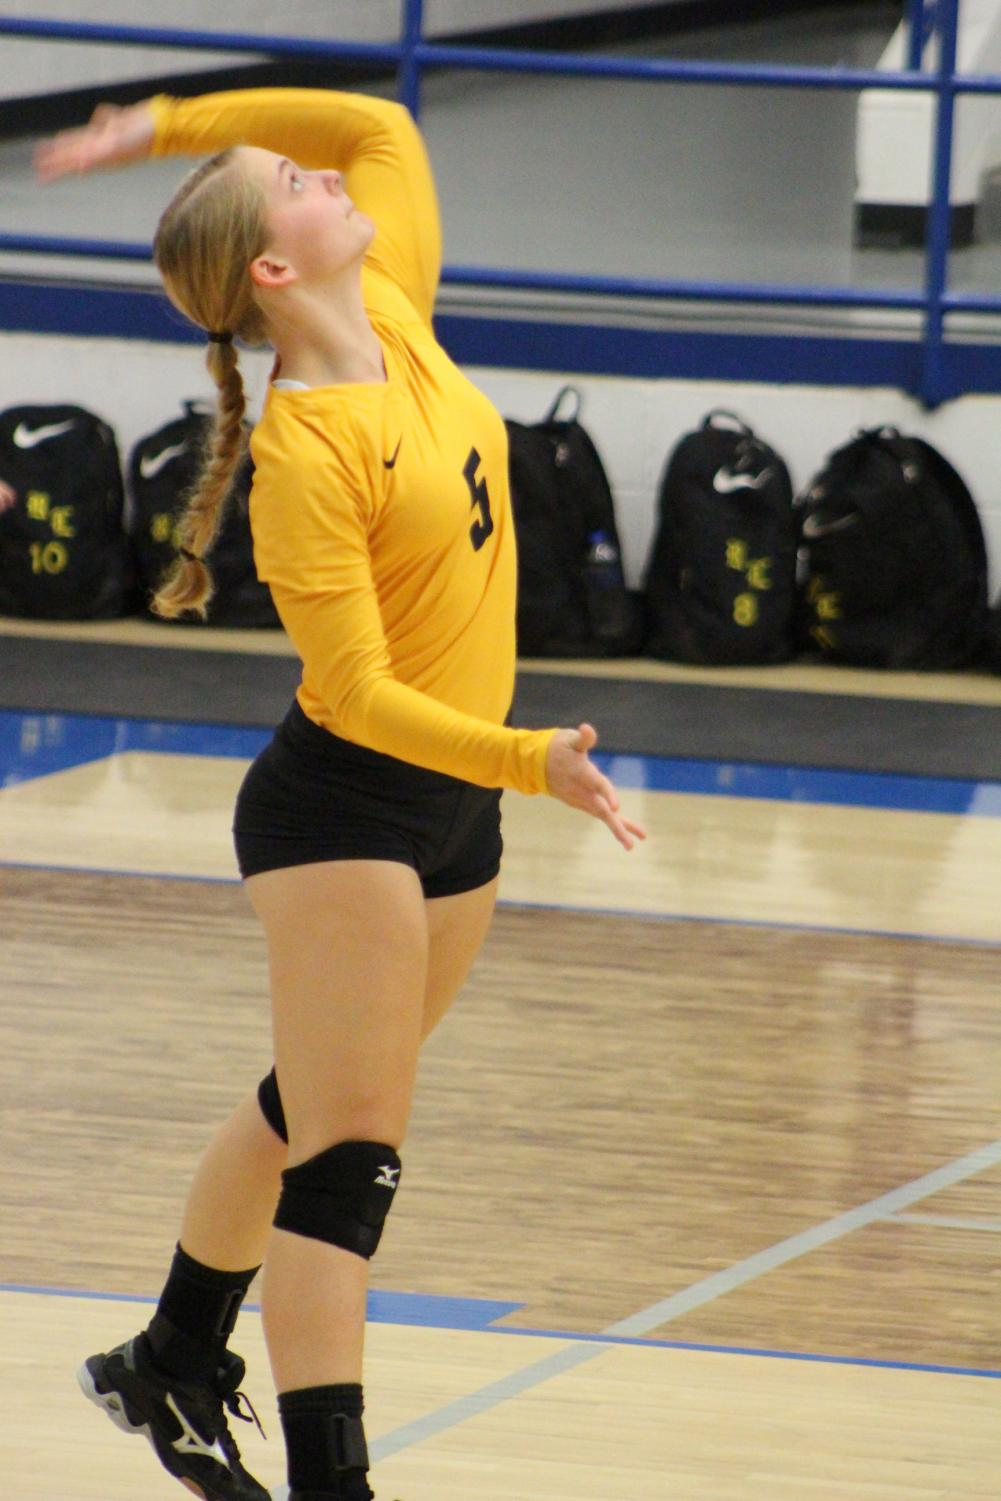 Christa Niemeyer serves the ball during the bi-district game with Mart.